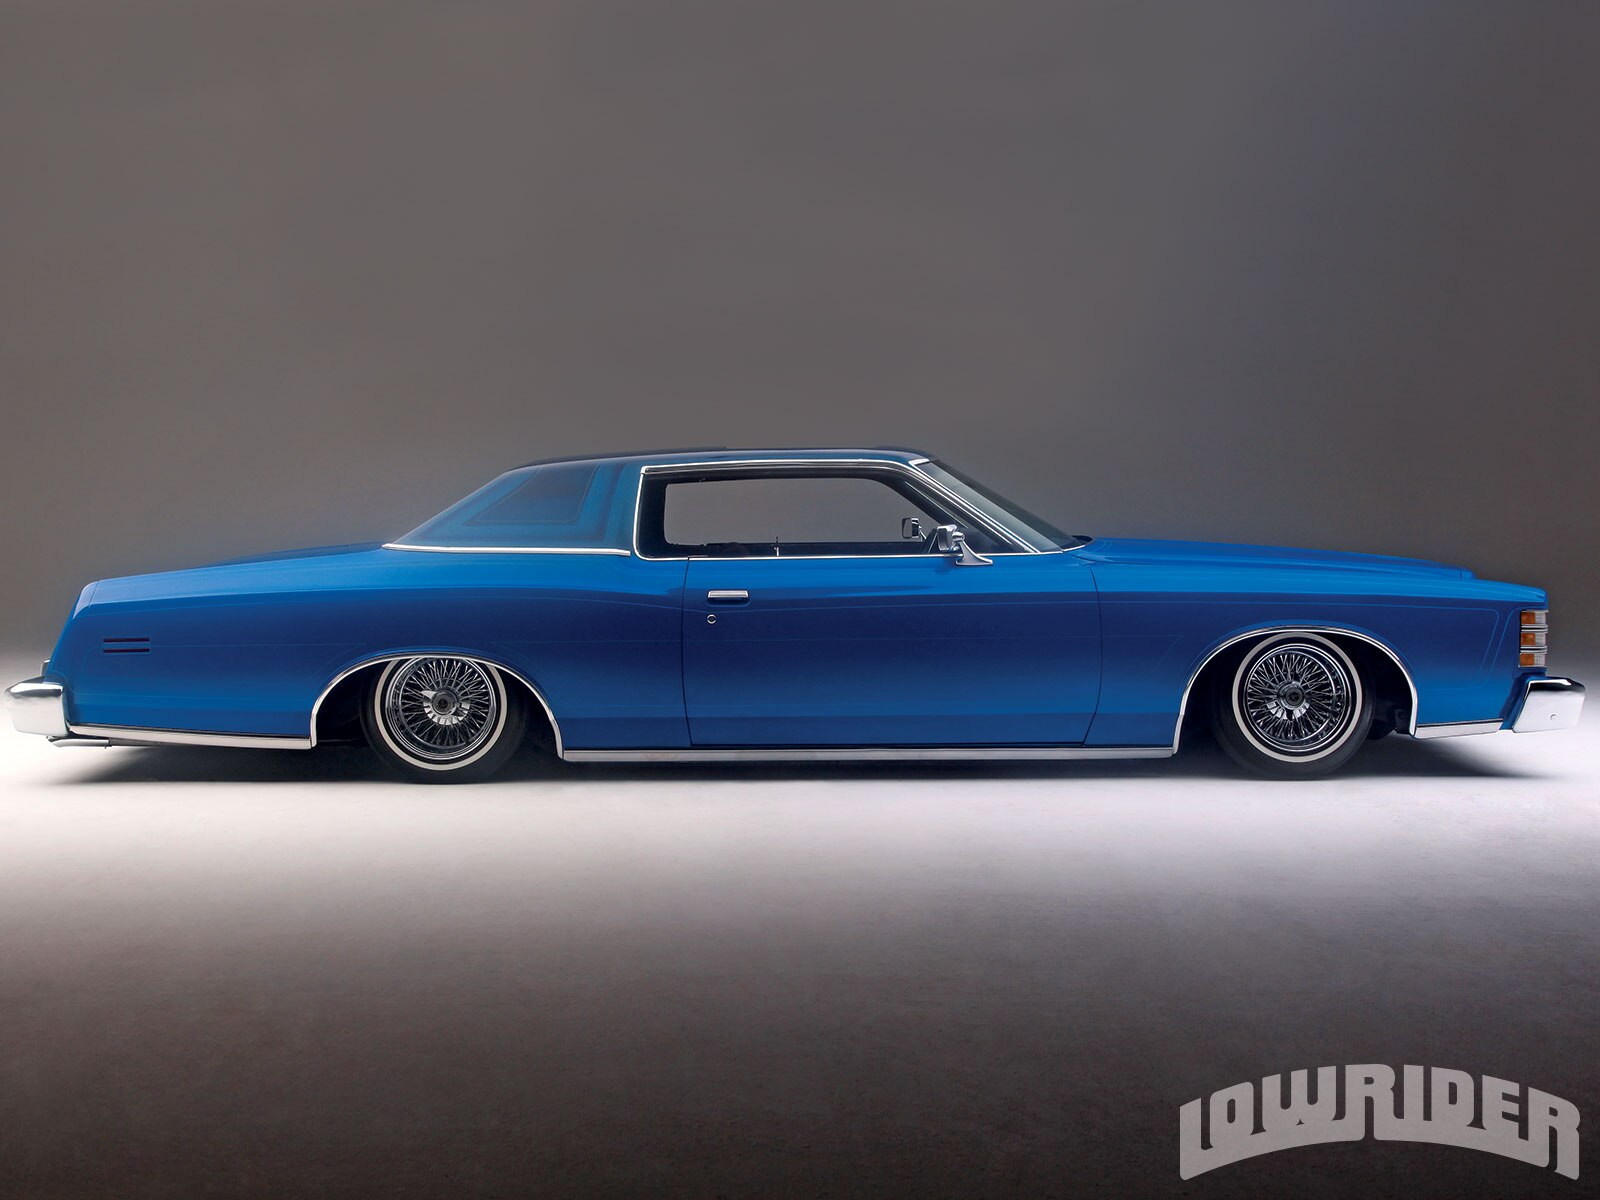 1973 Ford LTD - True Blue - Lowrider Magazine